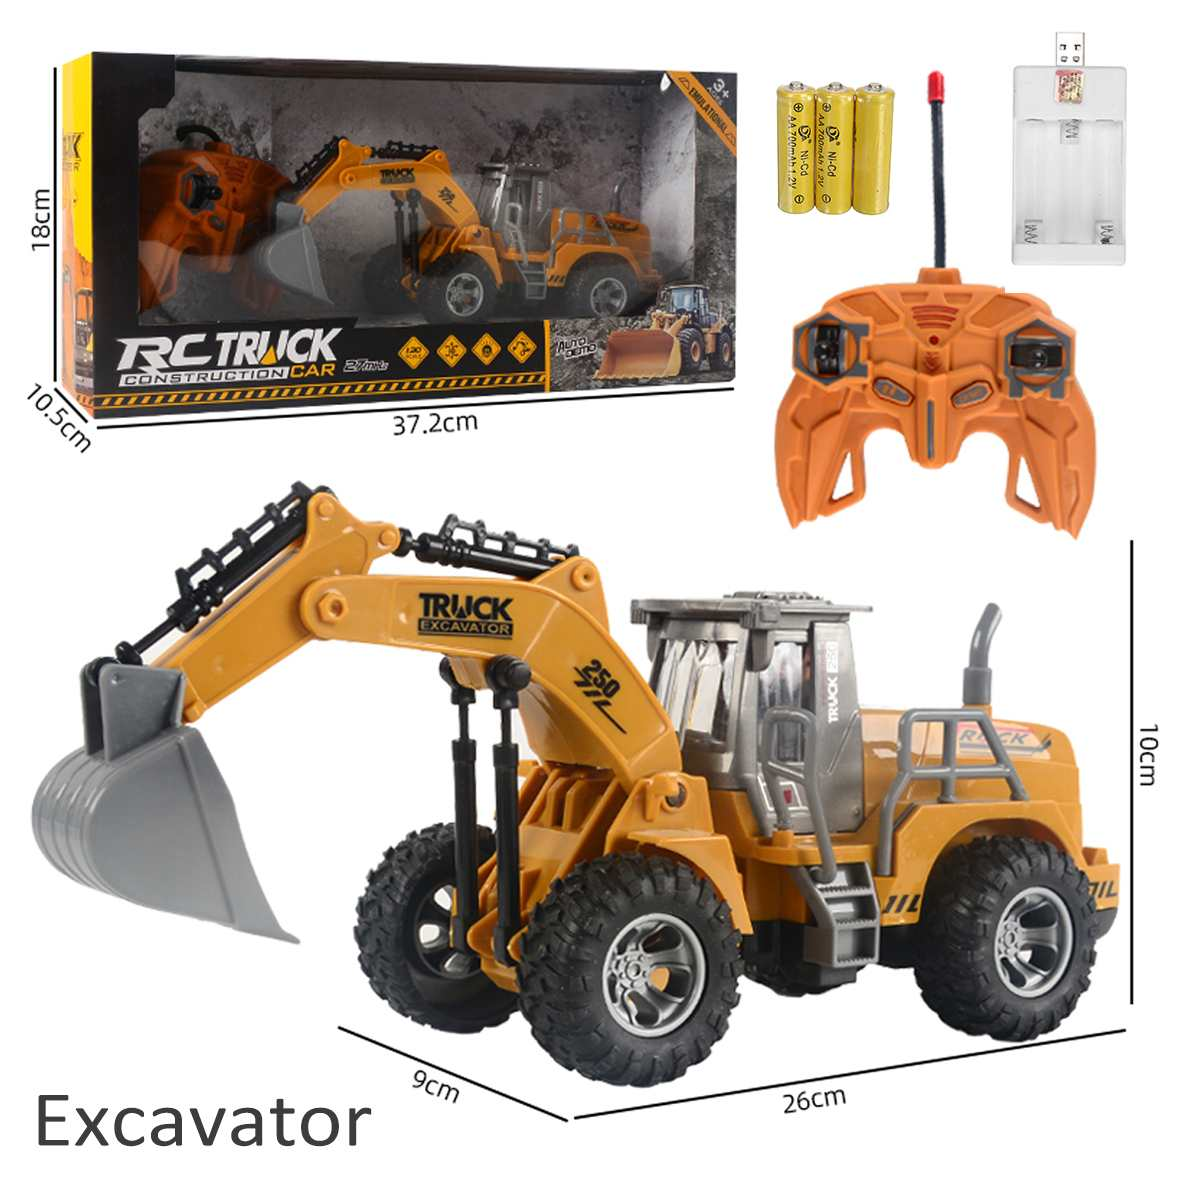 NEW 1:30 Rechargeable RC Excavator toy RC Engineering <font><b>Car</b></font> plastic <font><b>Electronic</b></font> Component Bulldozer For <font><b>kids</b></font> Christmas gift image